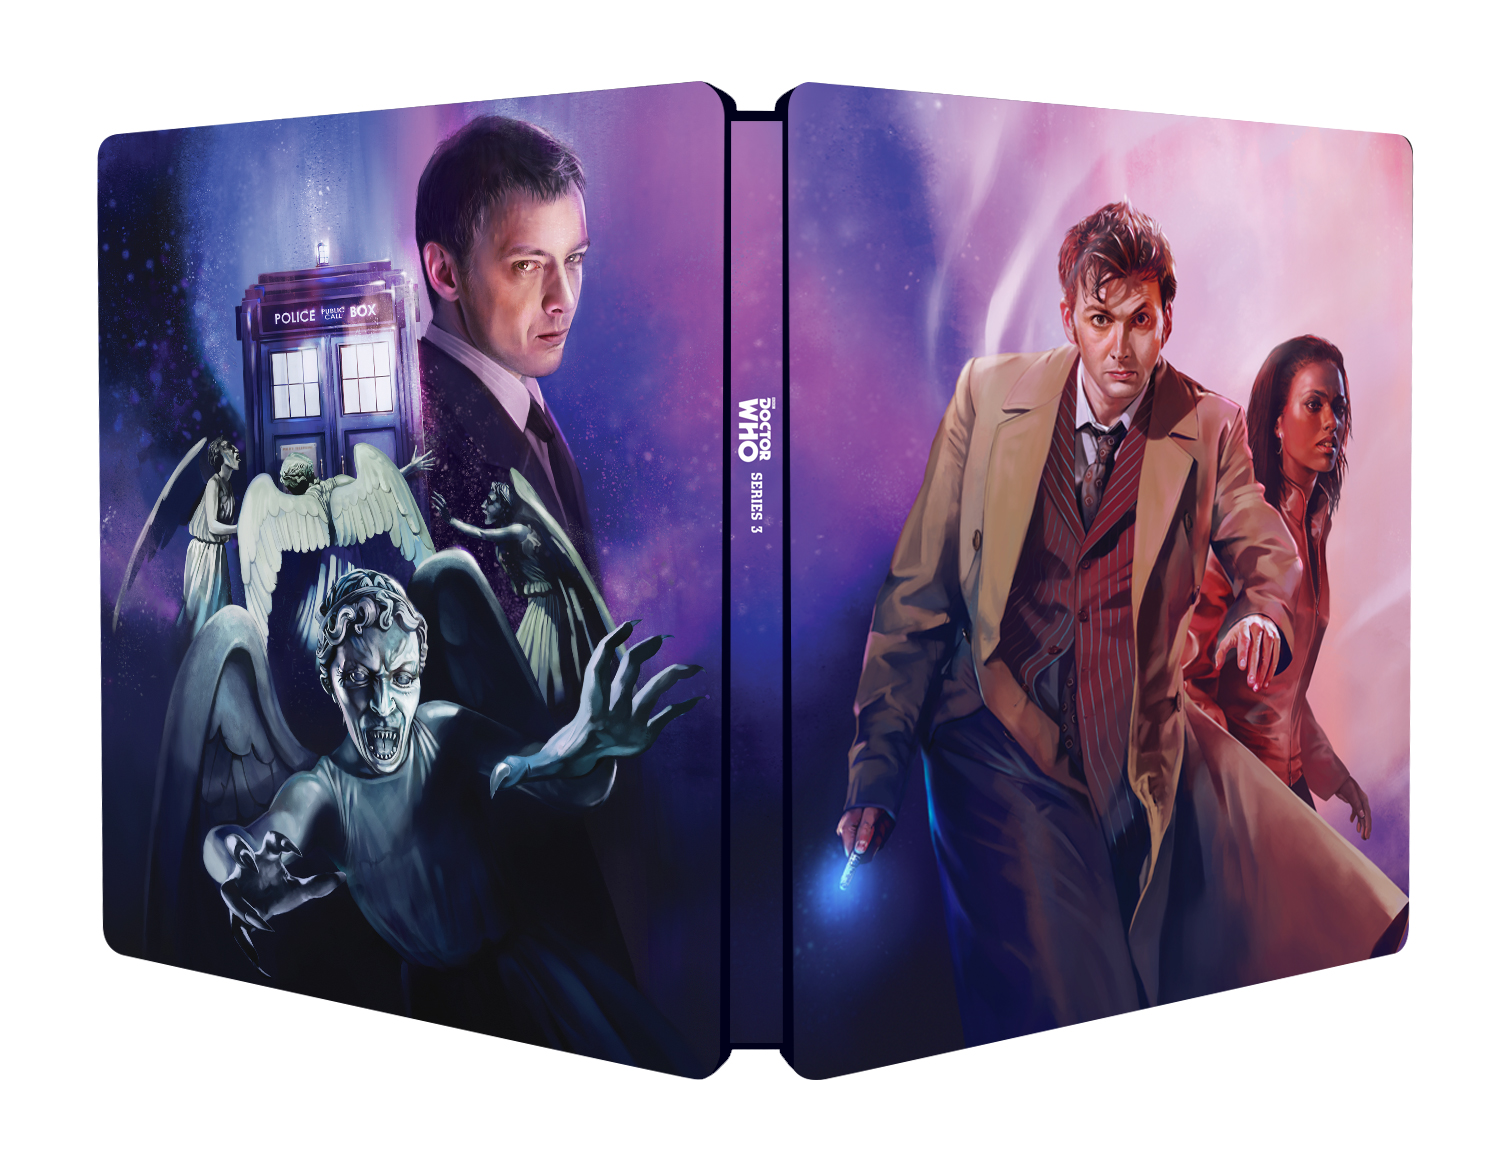 Doctor Who - Series 3 Steelbook - Cover (blu-ray) (Credit: BBC Worldwide)